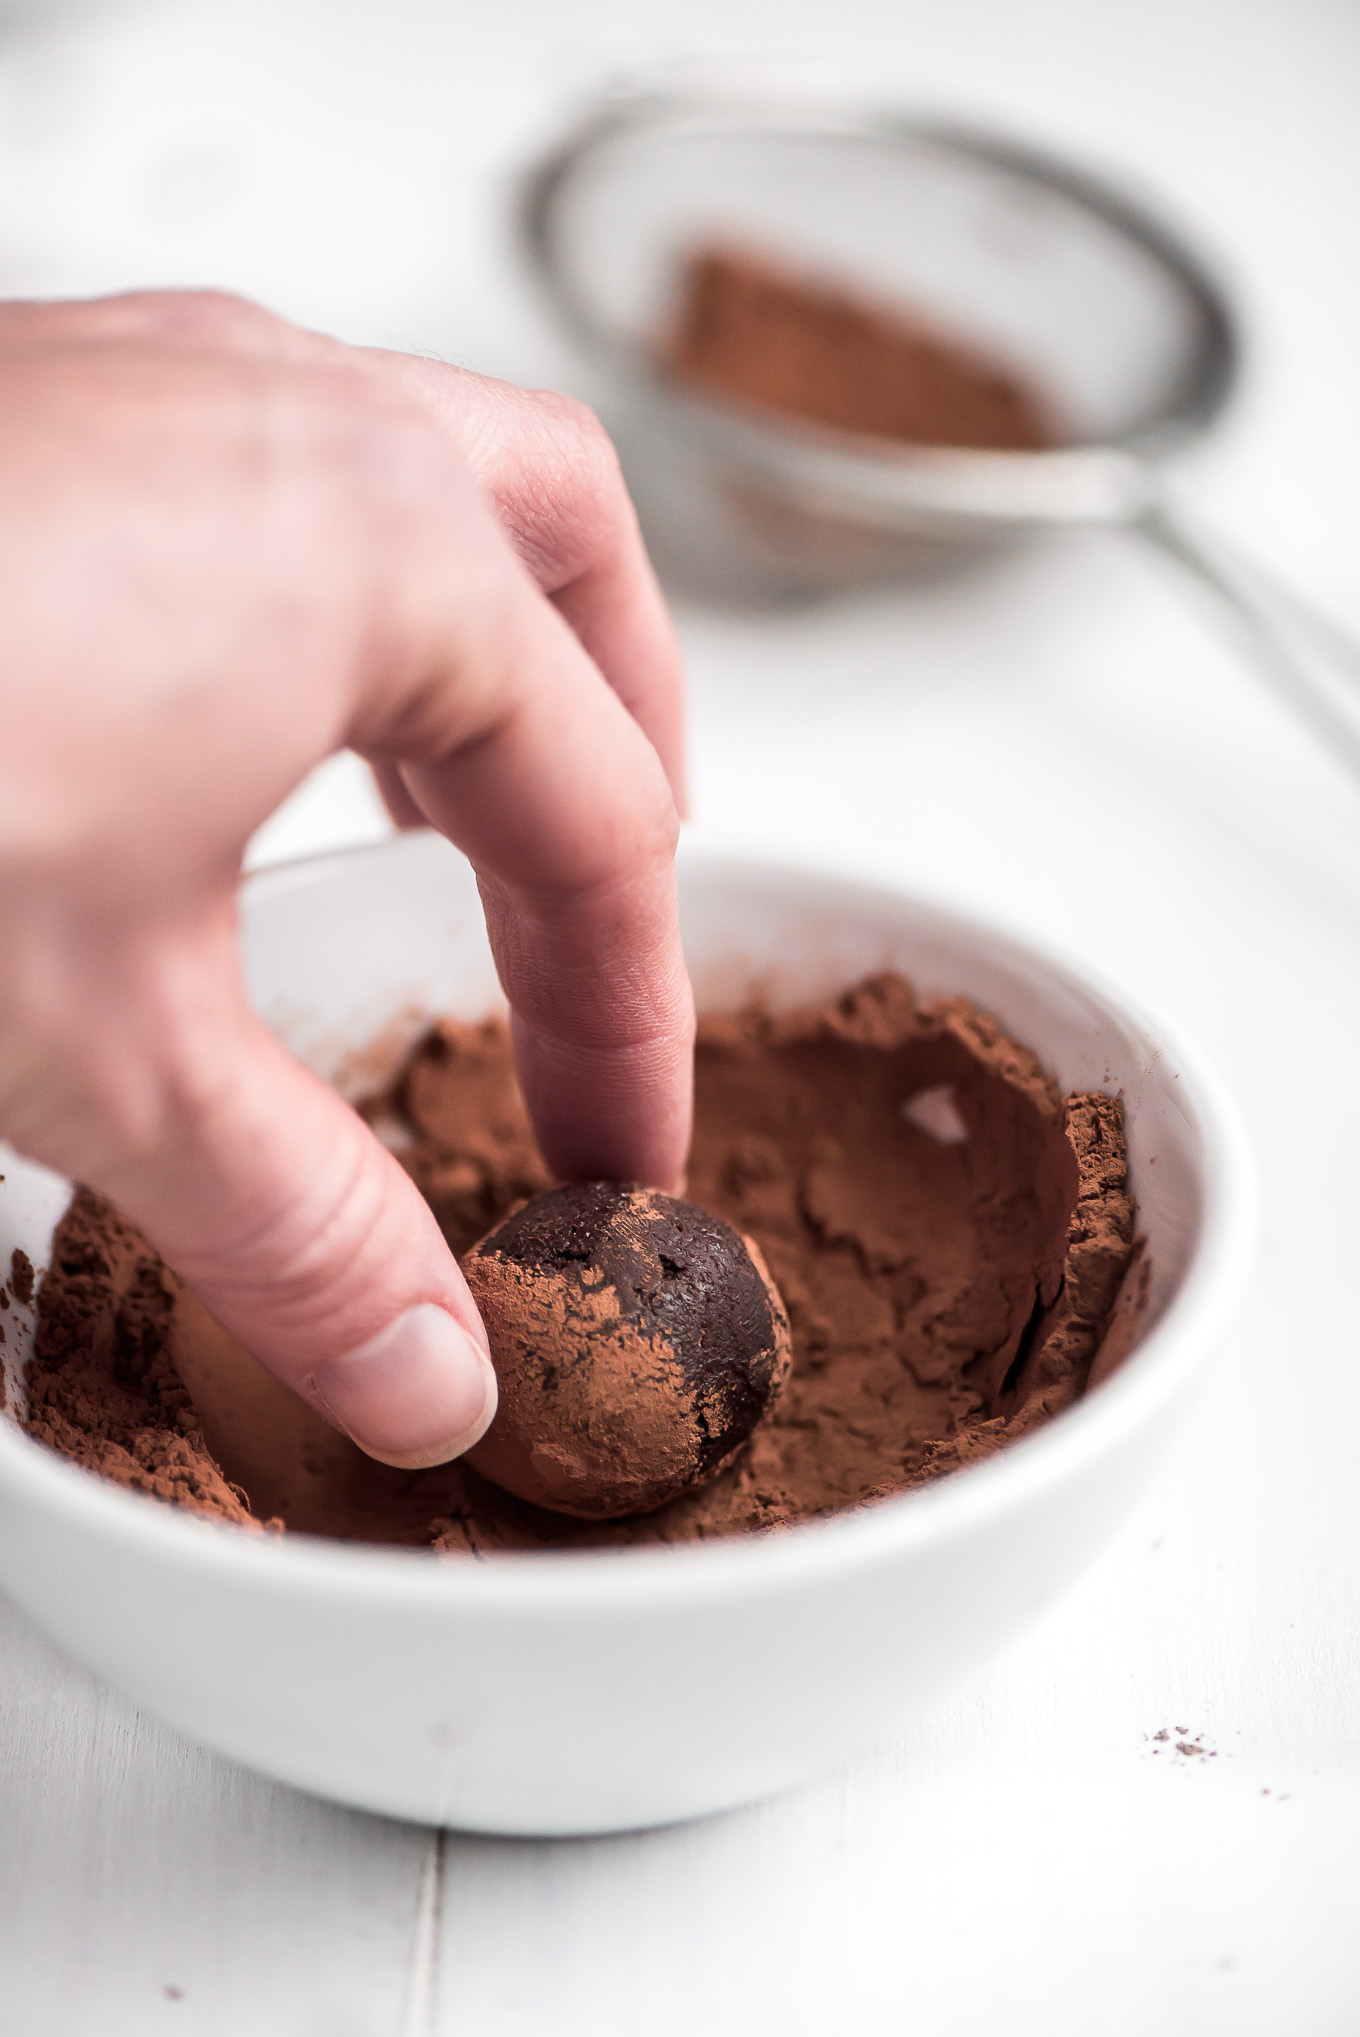 Making a chocolate truffle by rolling a bowl of ganache in a small bowl of cocoa powder.